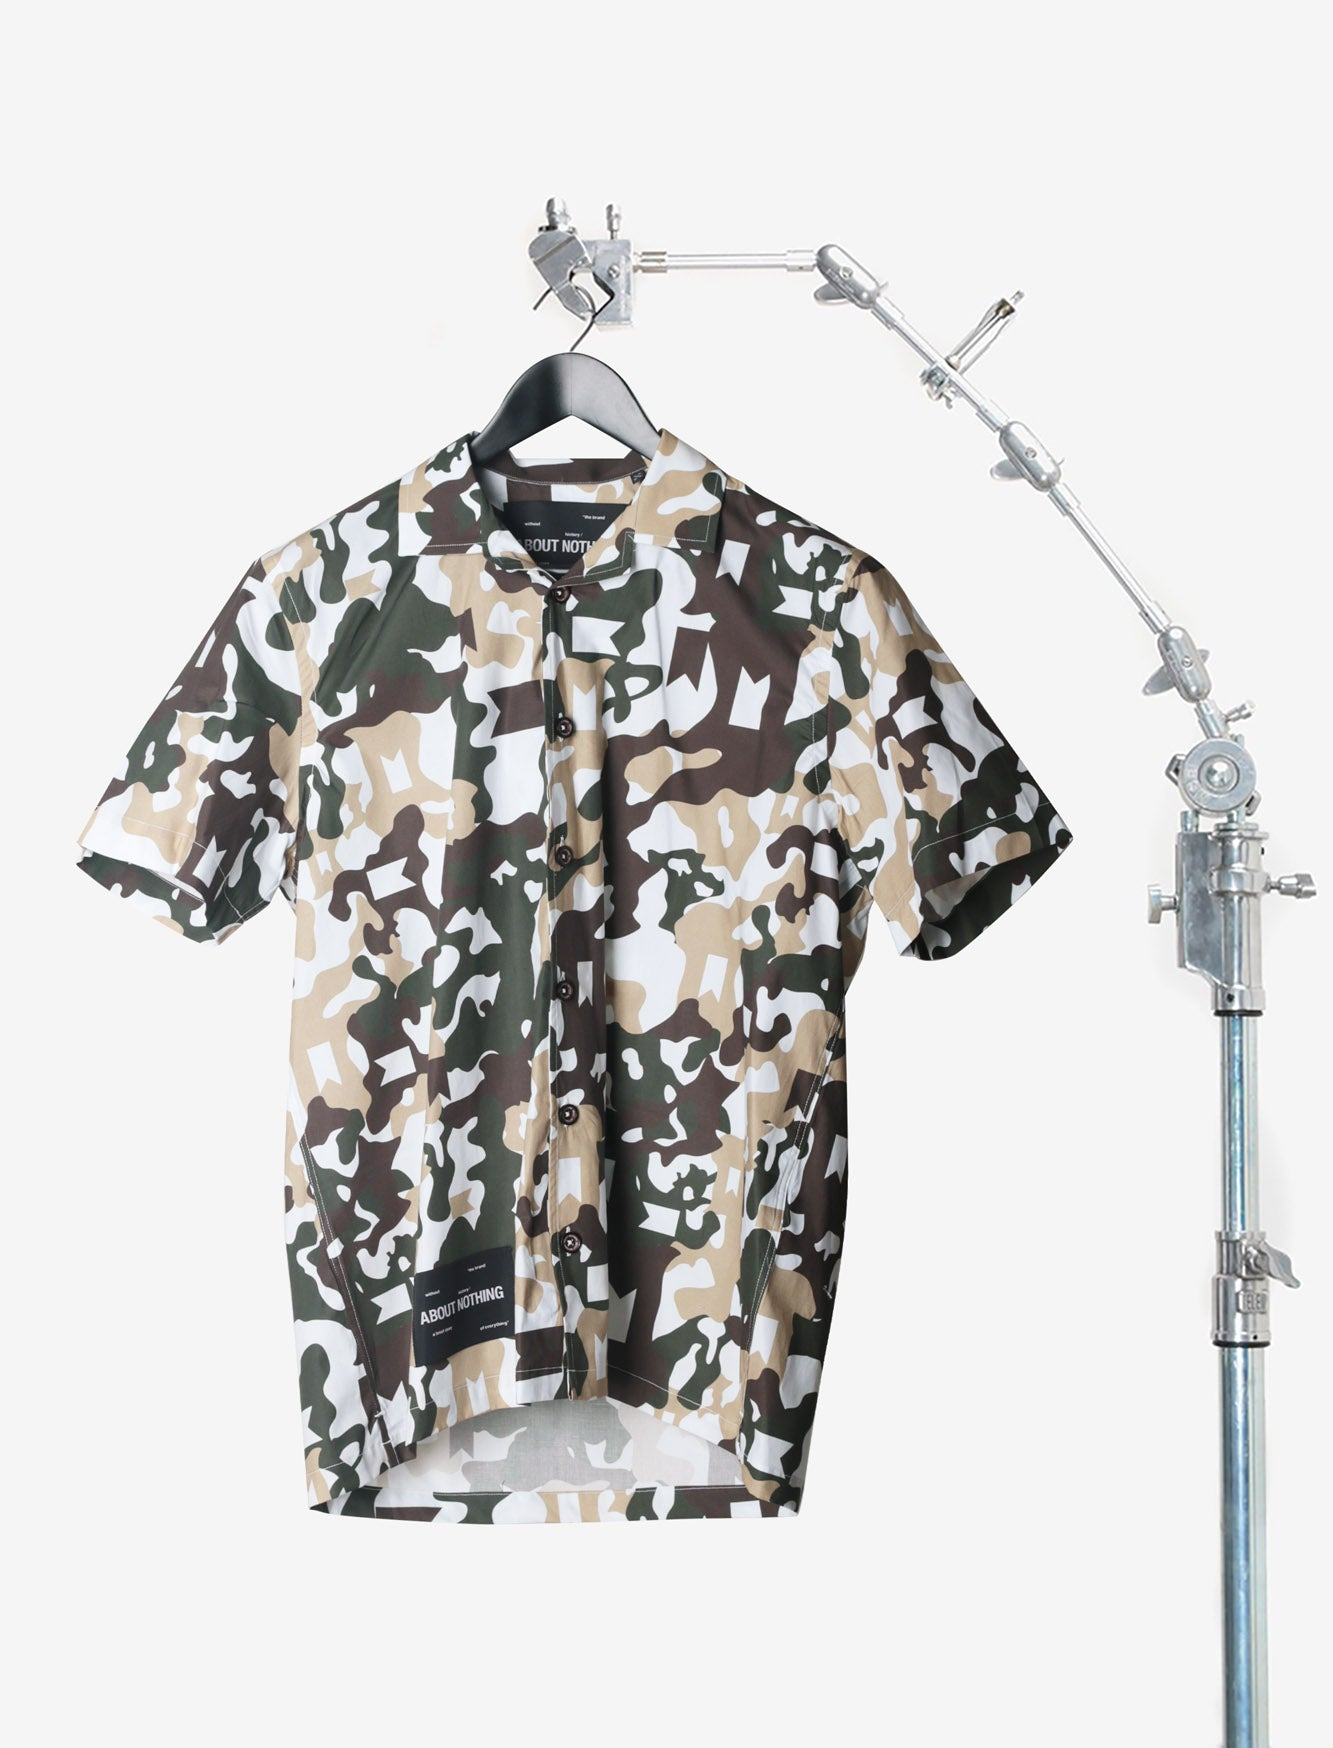 BOWLING SHIRT // GREEN CAMO BIG PATTERN